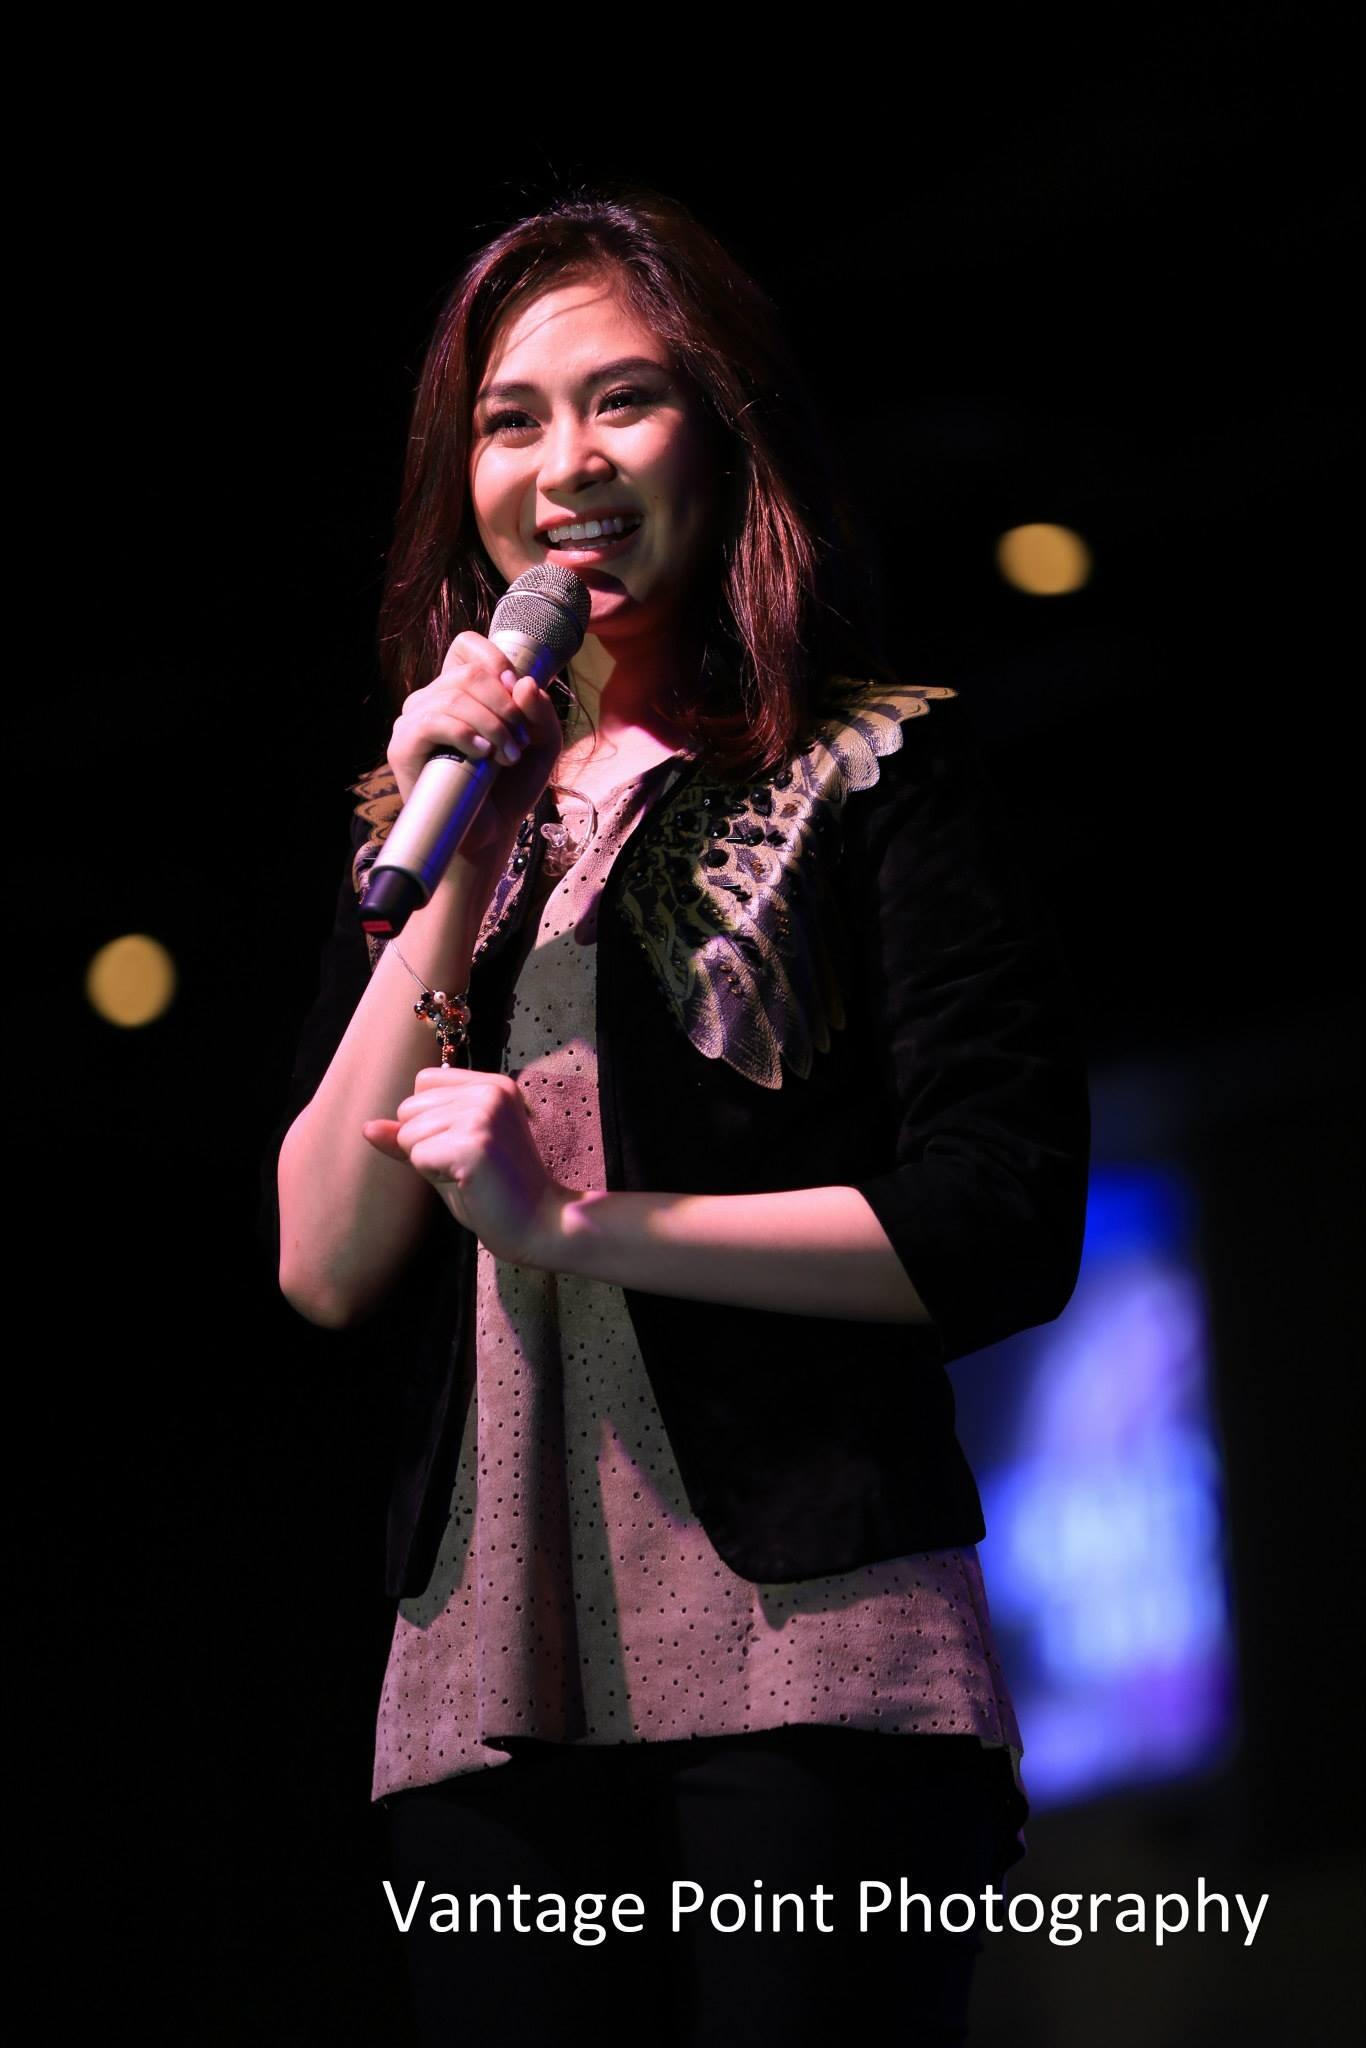 Sarah G. performs in her Harbor Point, Subic Album Tour. (c)vantagepointphotography : http://t.co/dH52KGeuMH